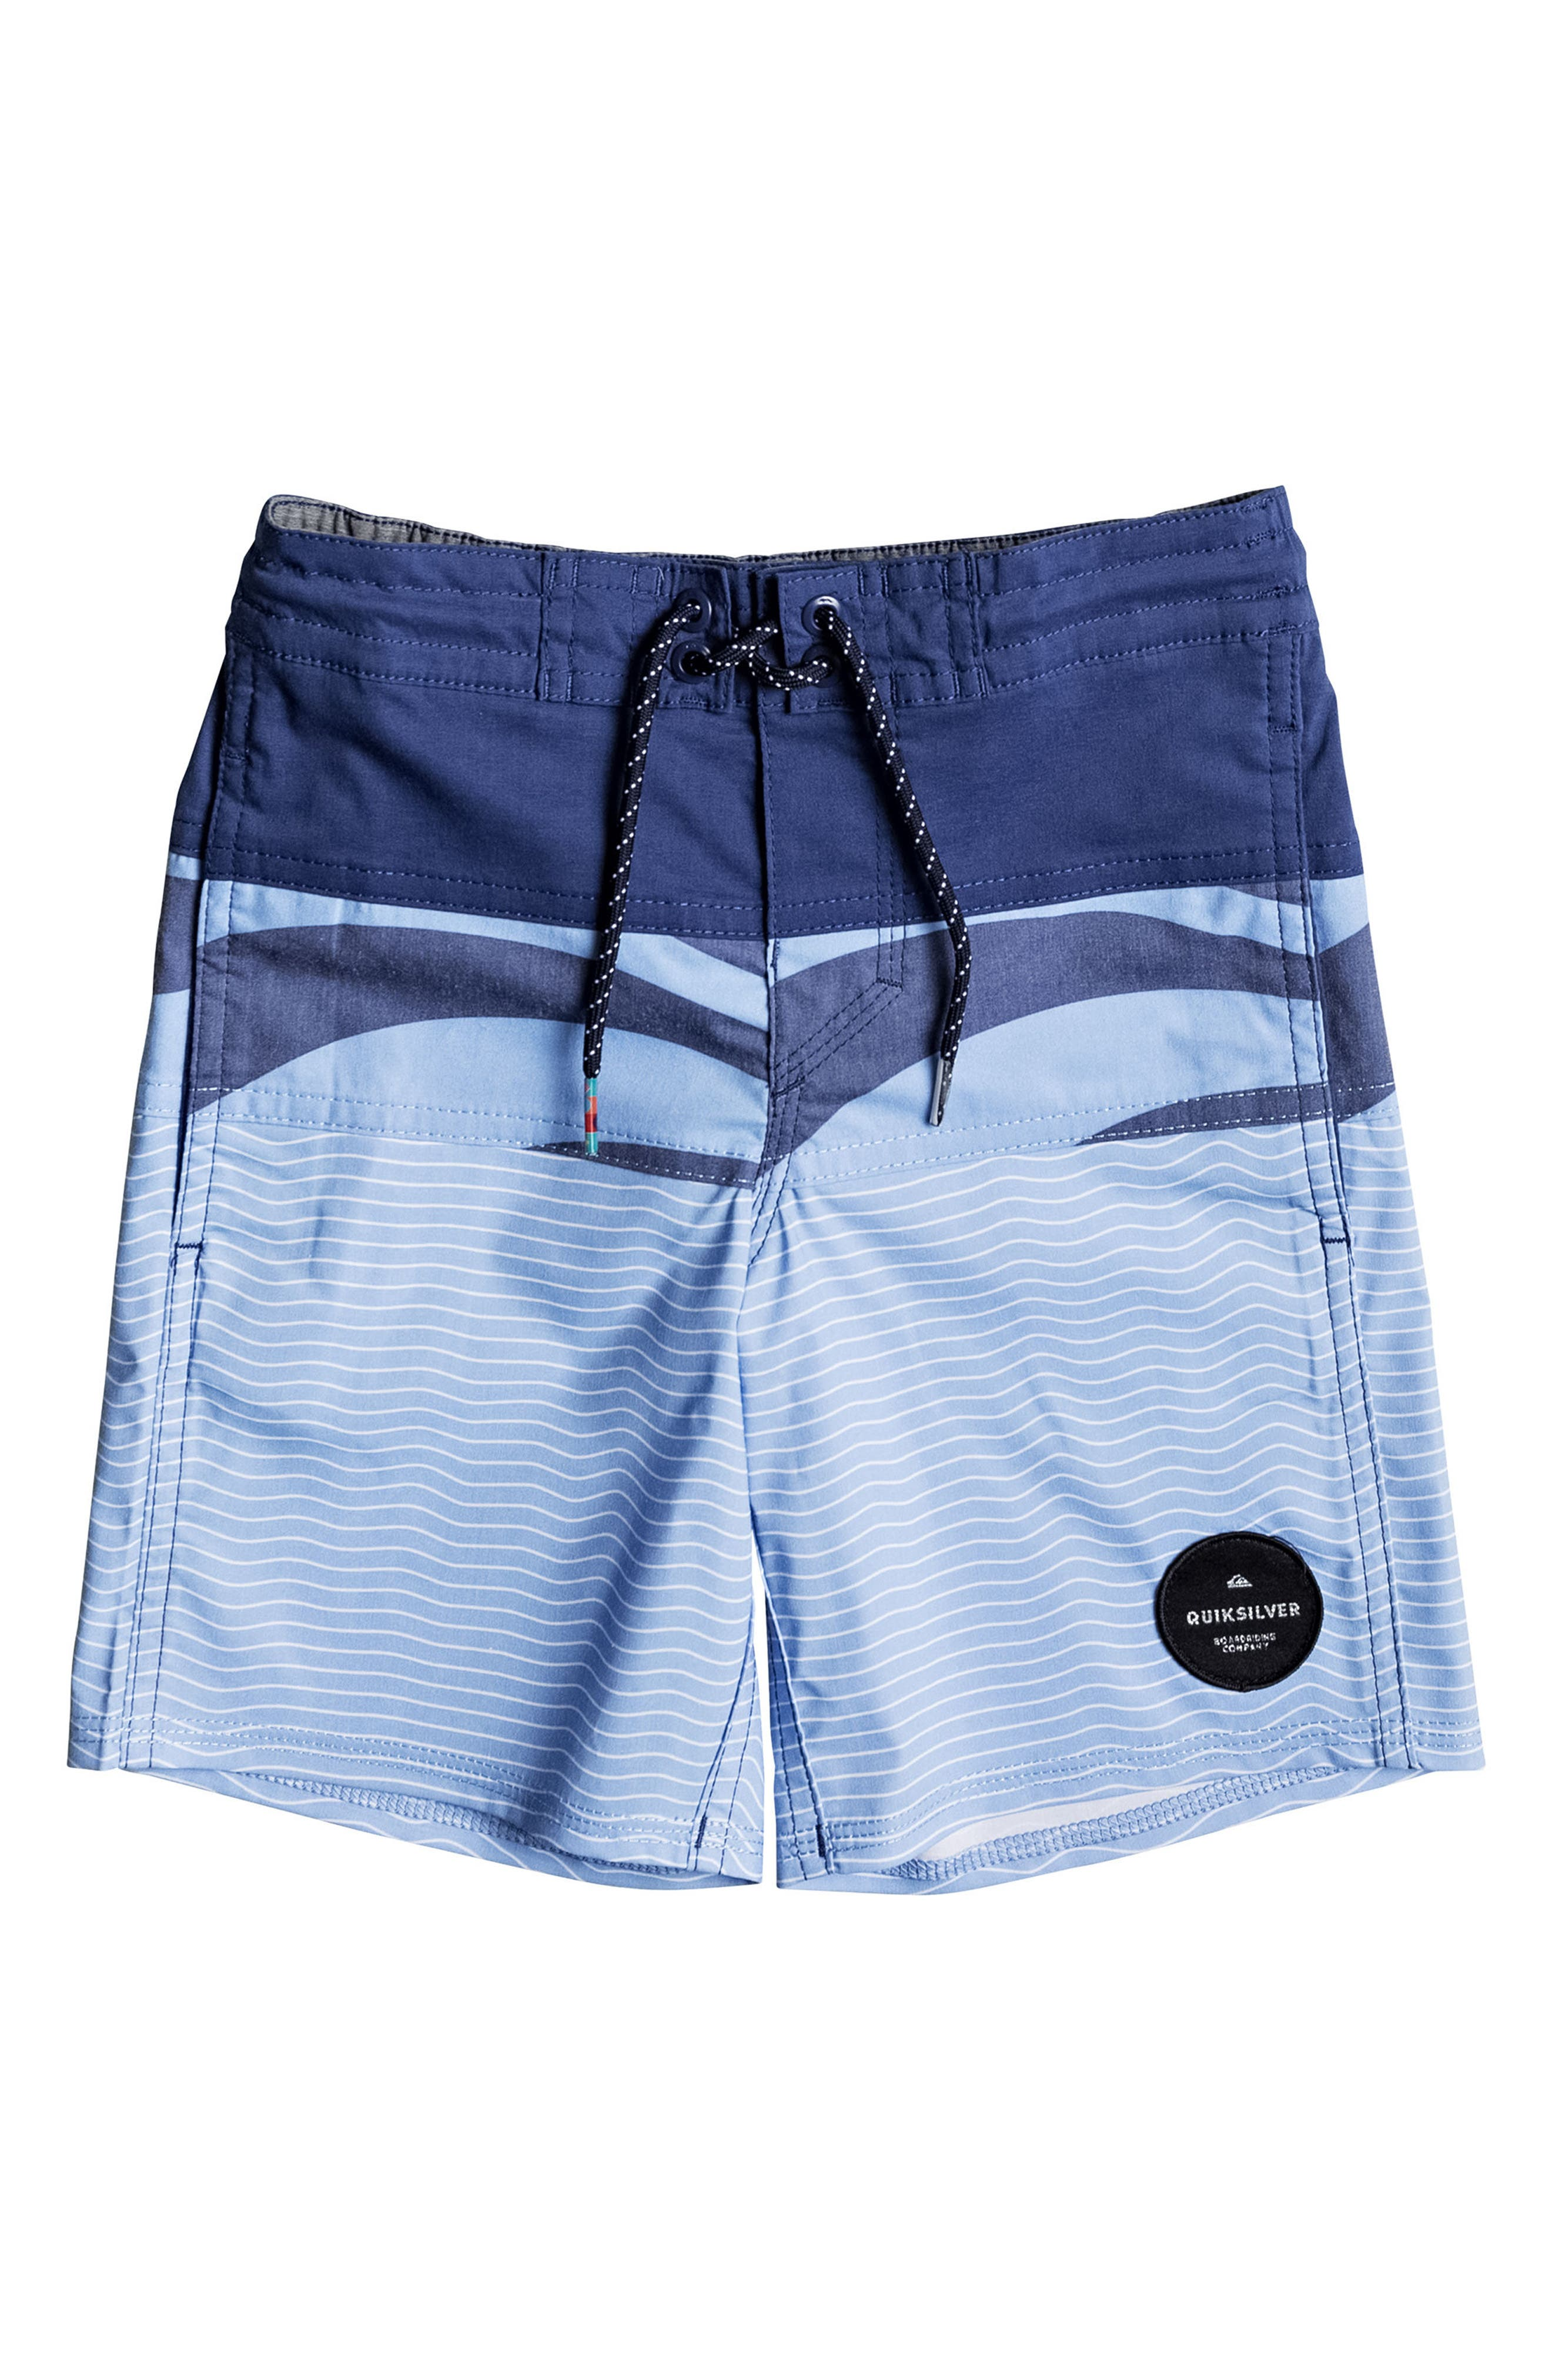 Main Image - Quiksilver Heatwave Blocked Board Shorts (Toddler Boys & Little Boys)